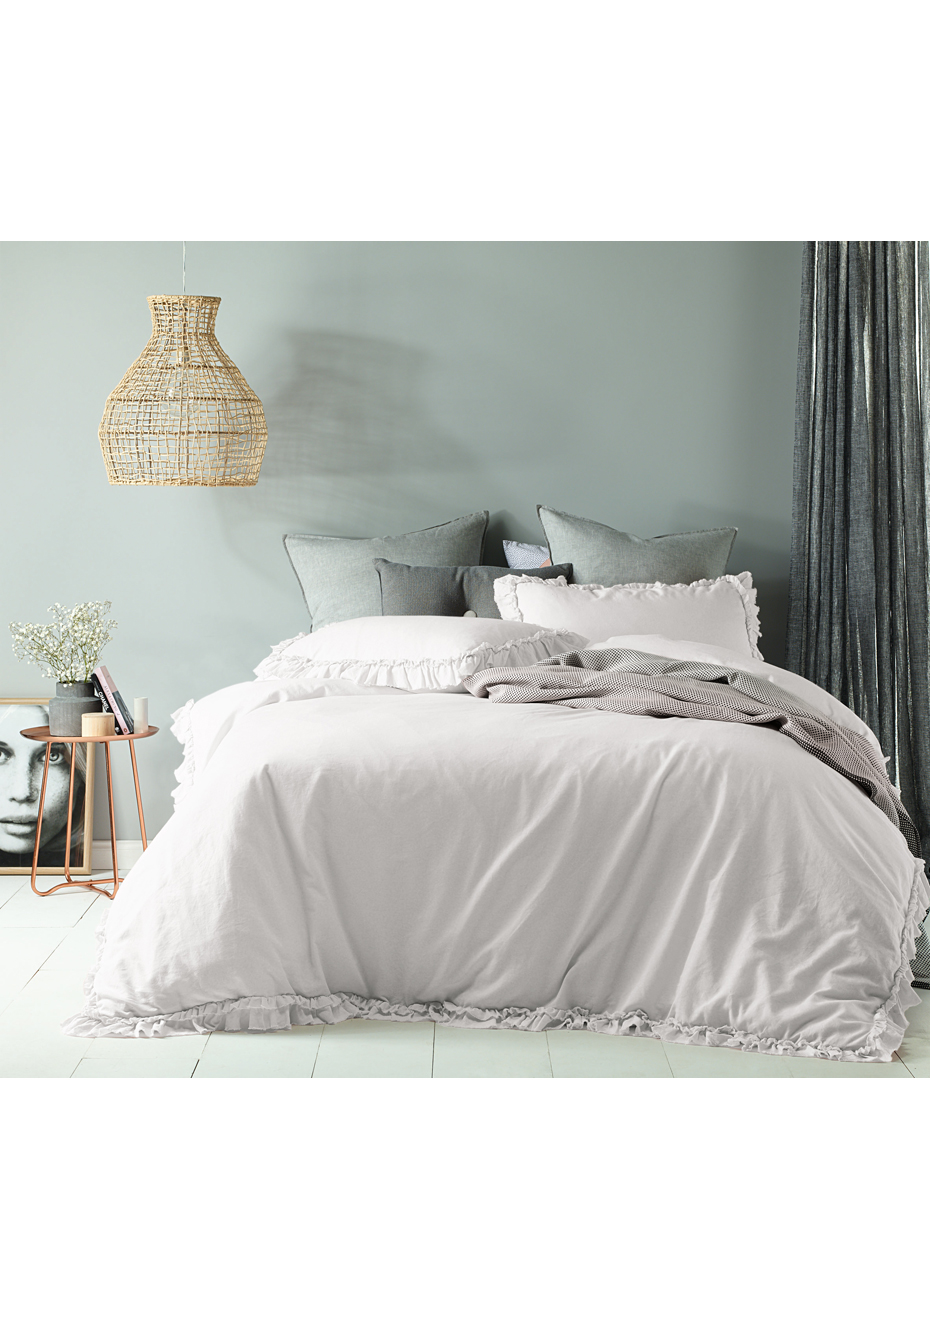 Quilt Cover King Was 99 99 Maison White Linen Cotton Quilt Cover Set King Bed